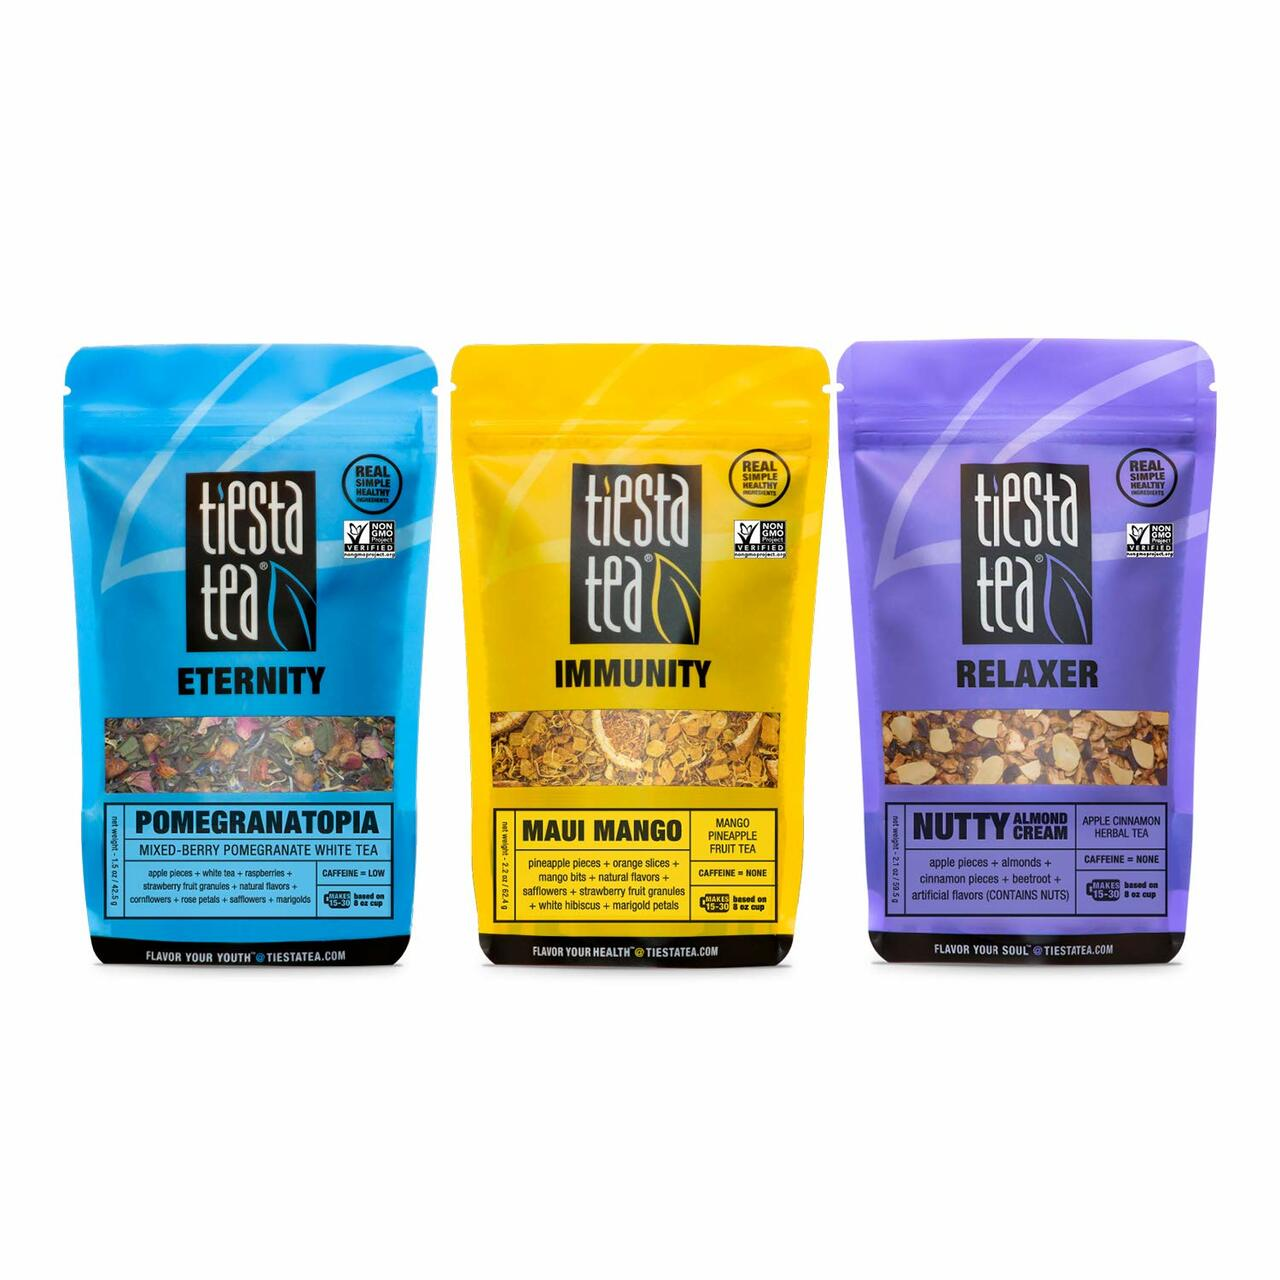 Free Tiesta Loose Leaf Tea